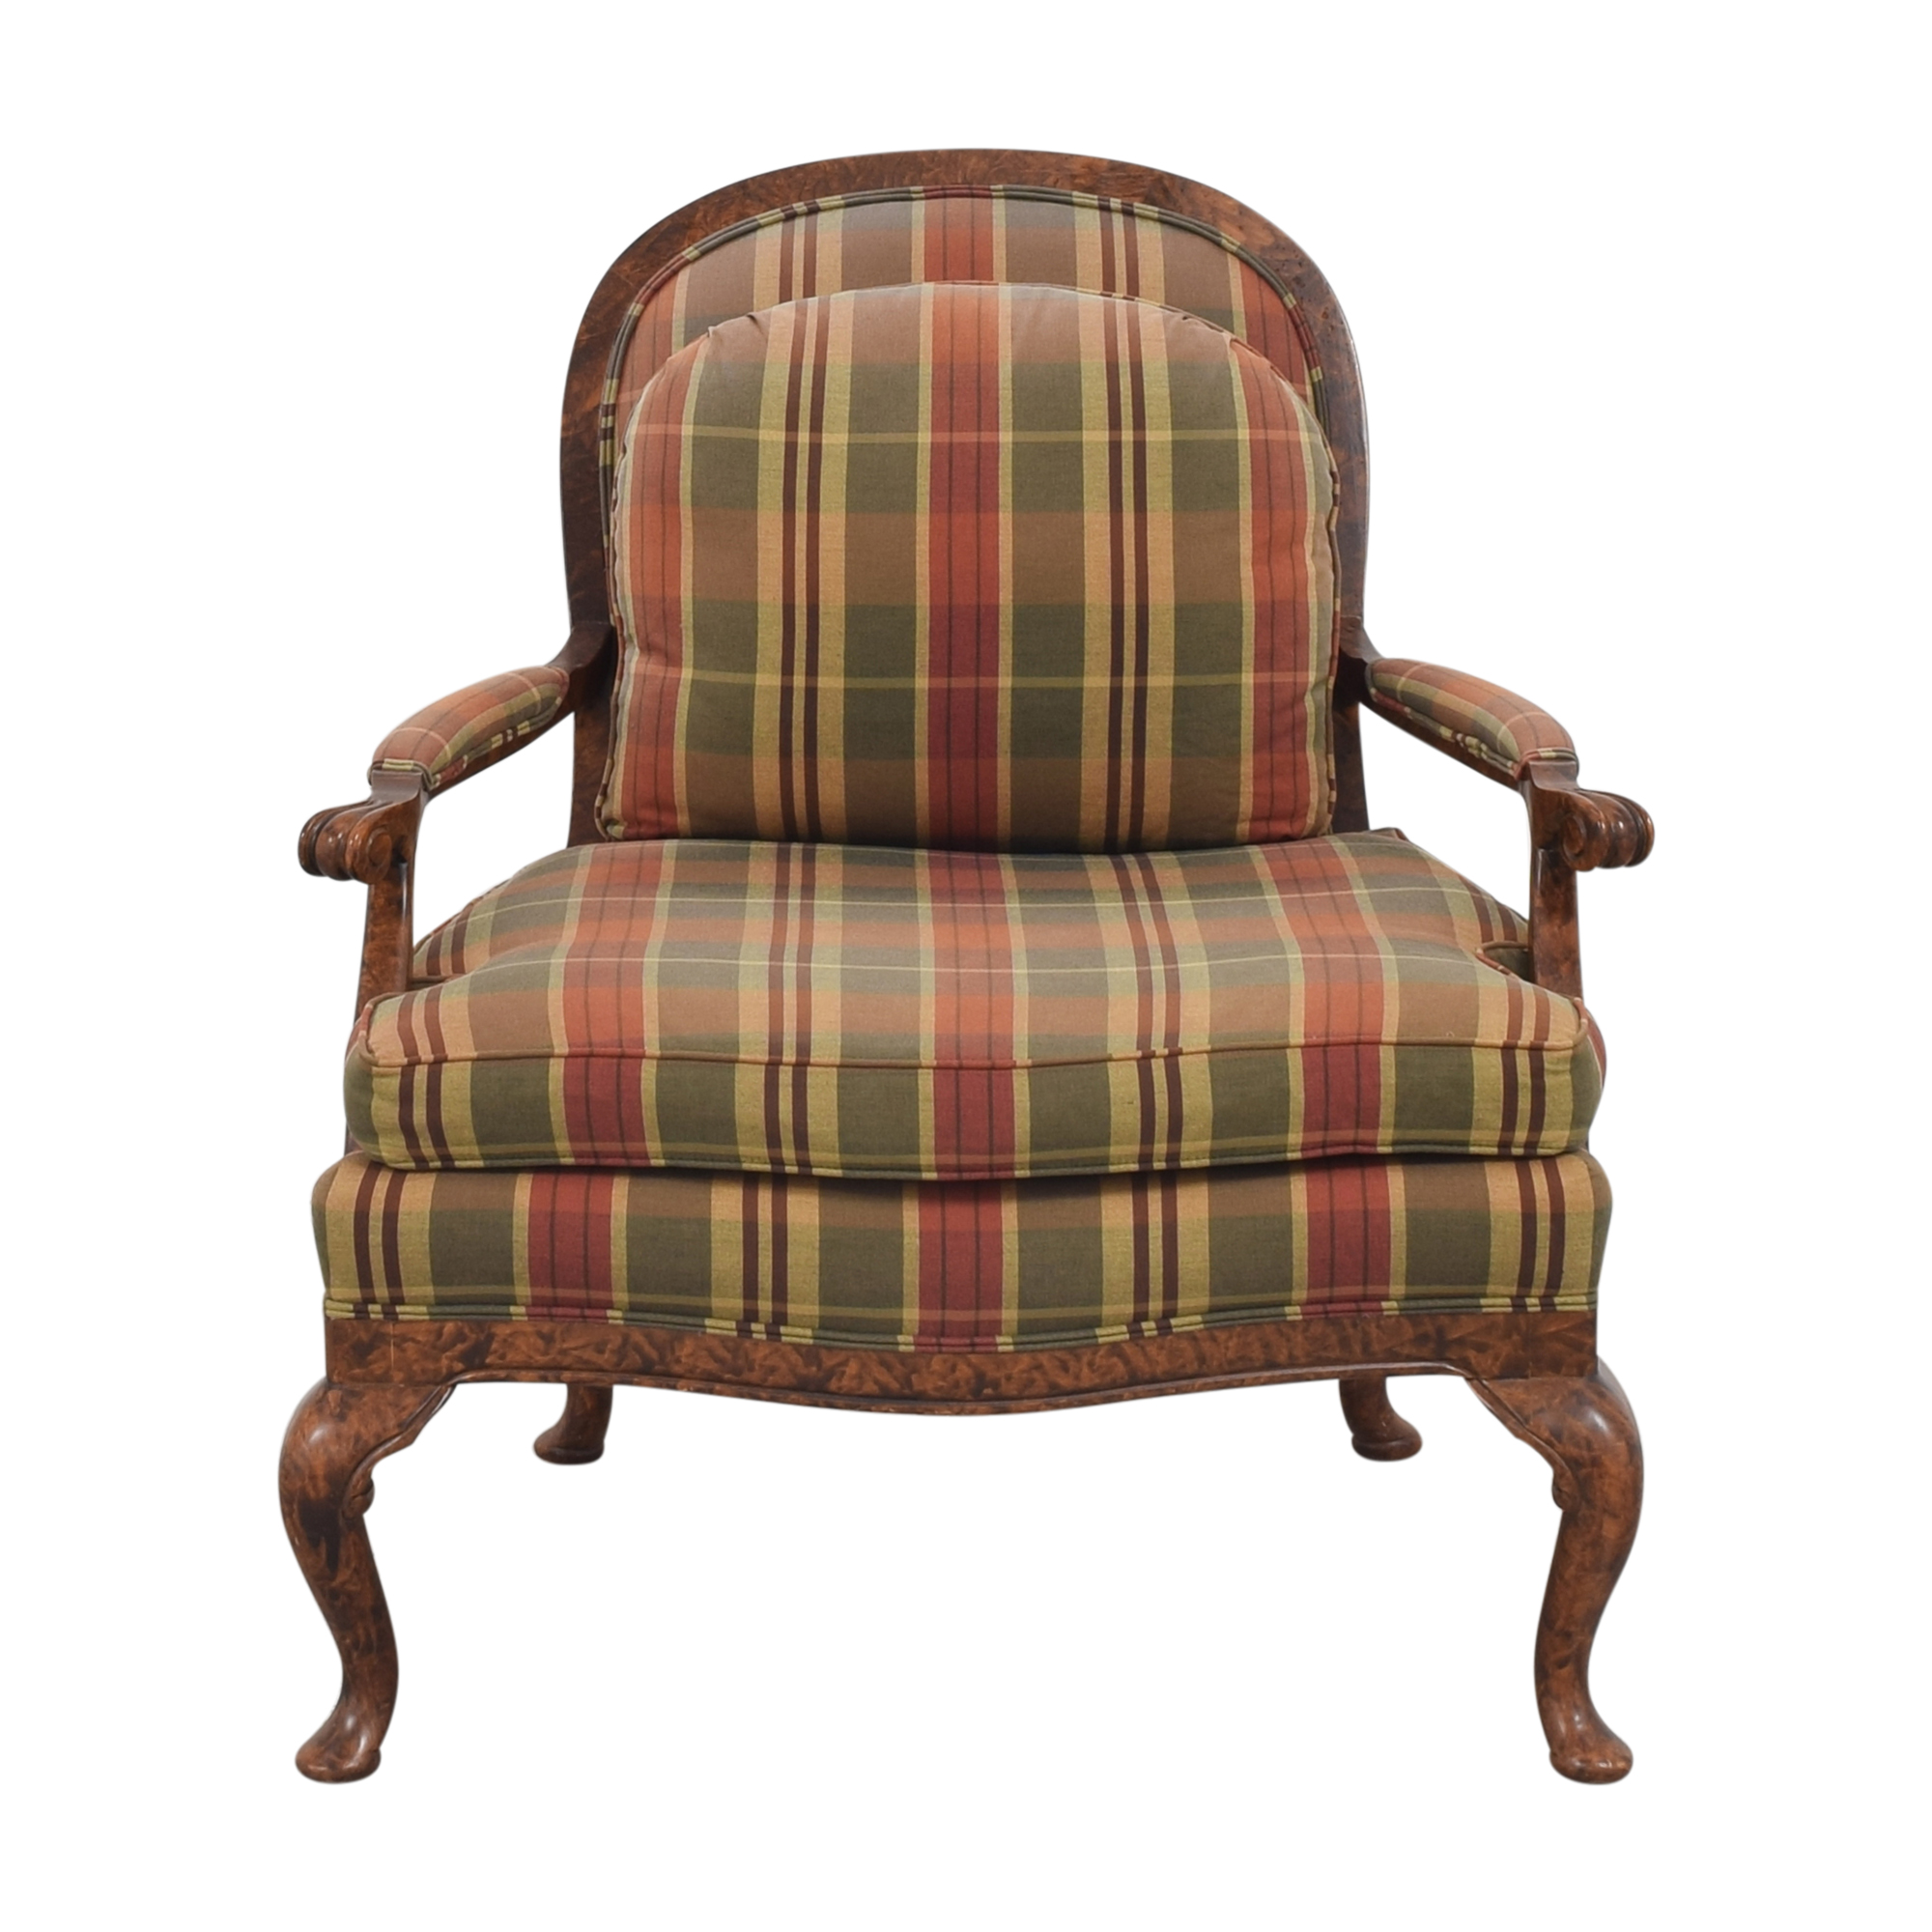 Taylor King Taylor King Plaid Accent Chair second hand